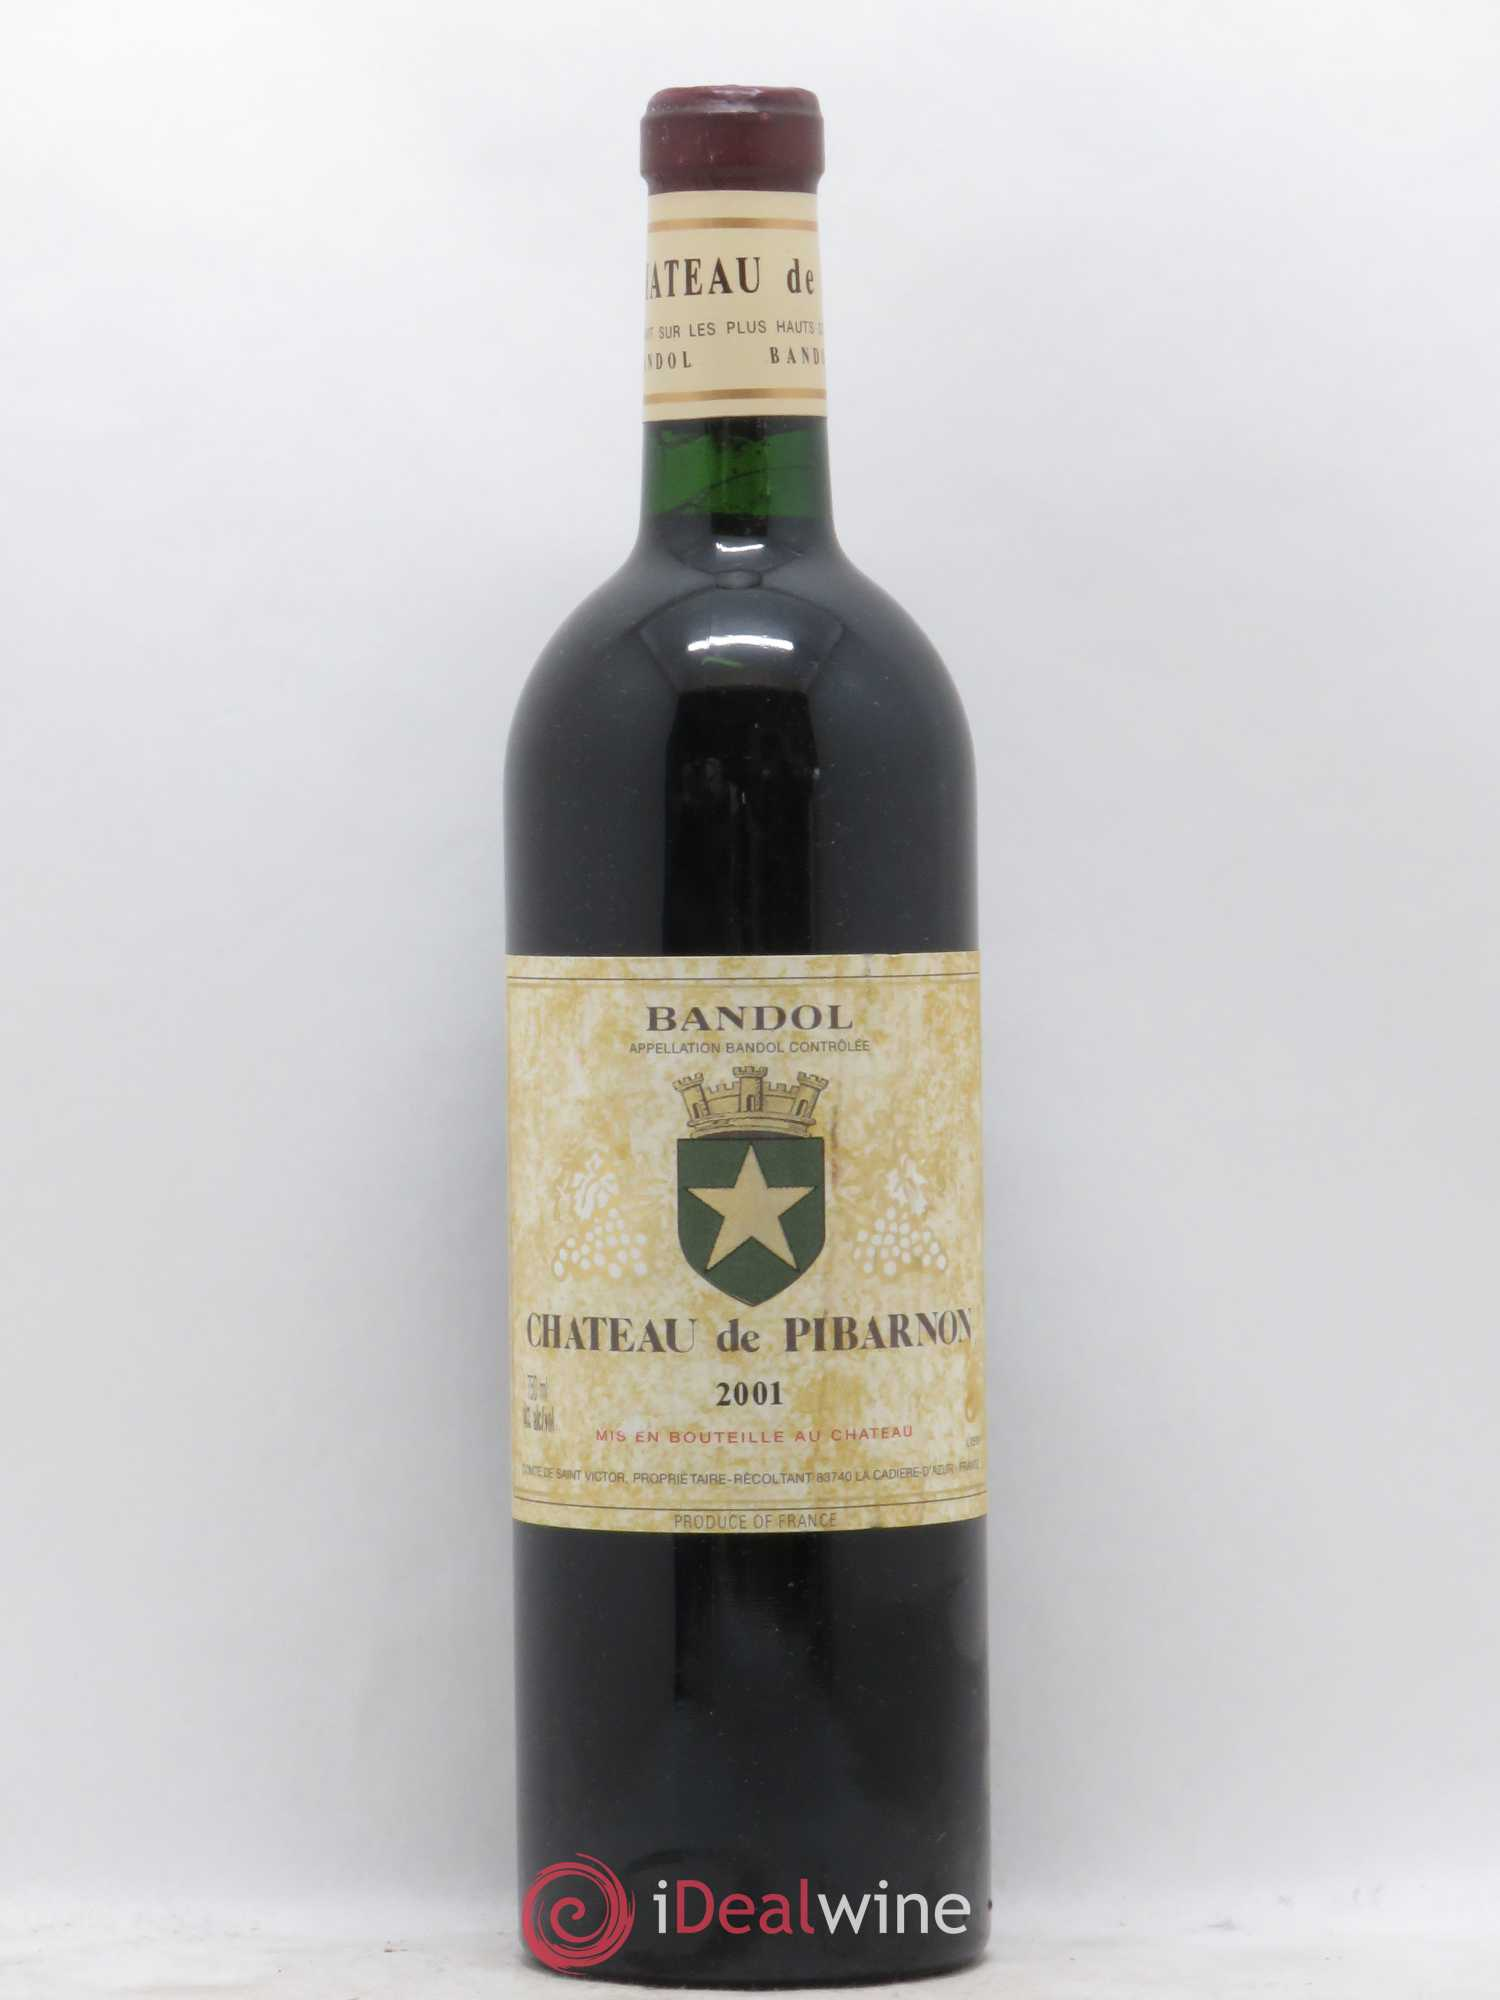 Bandol Château de Pibarnon Comte de Saint-Victor  2001 - Lot of 1 Bottle